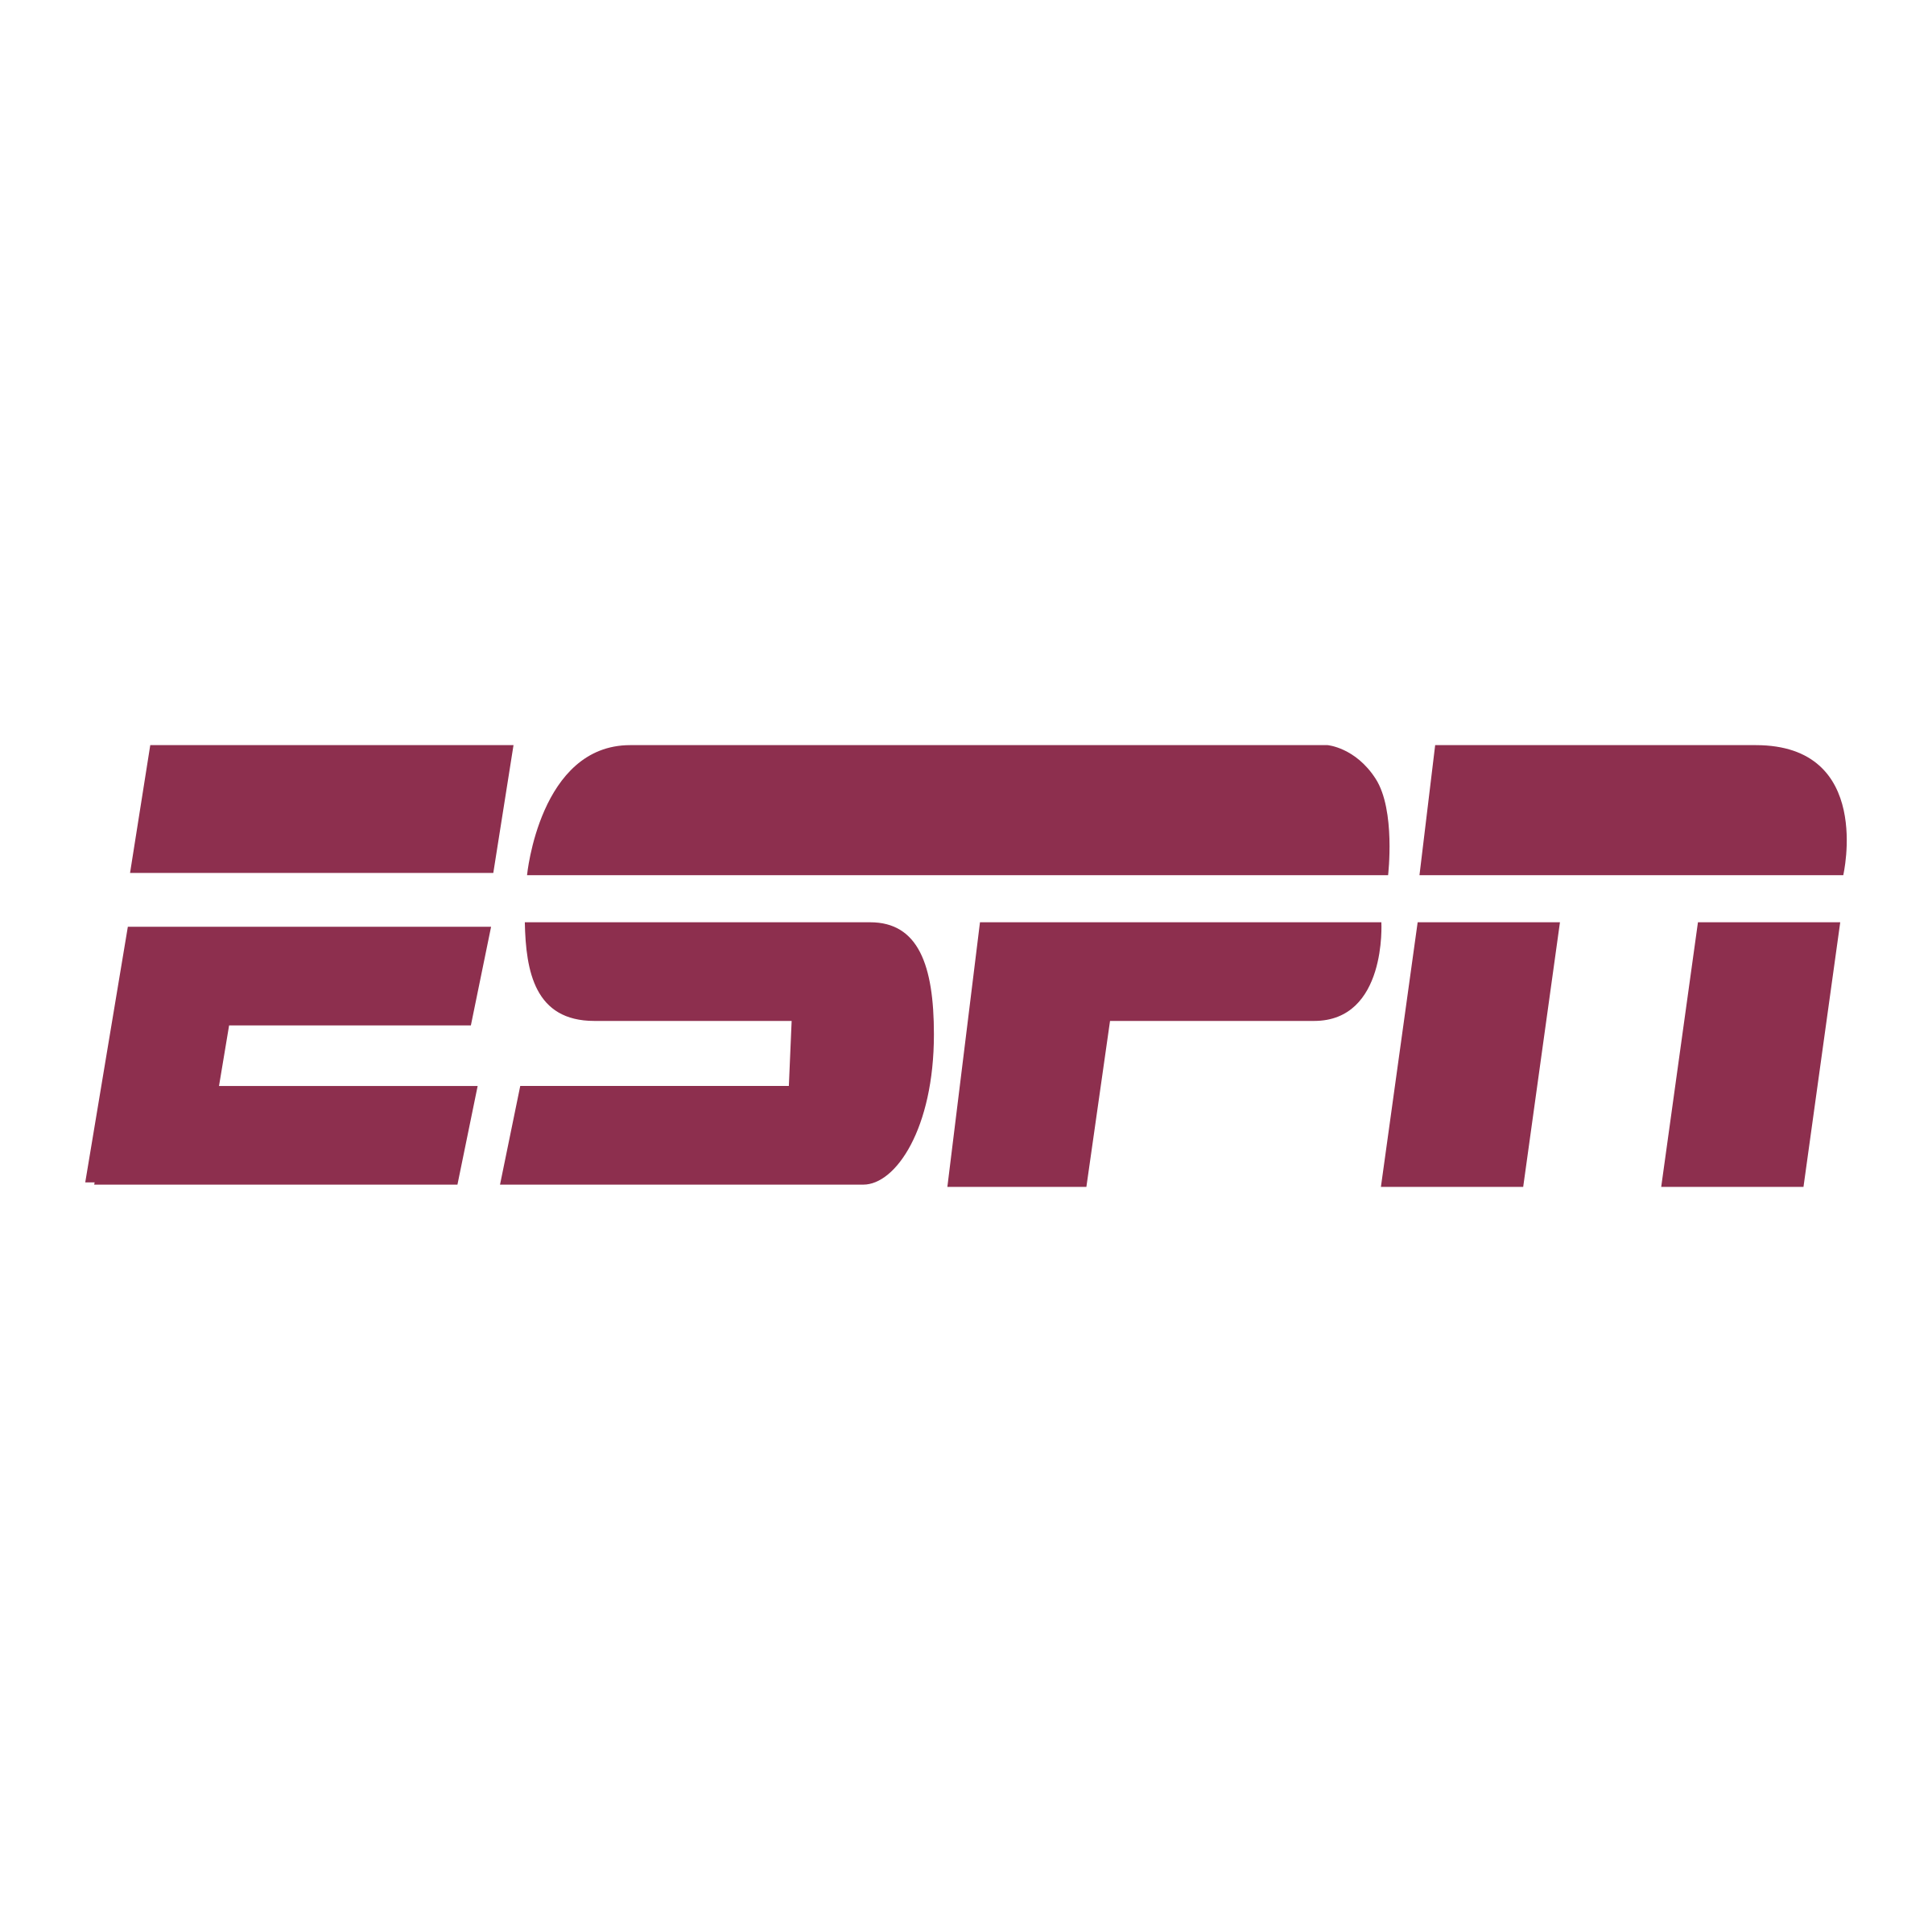 espn logo png transparent svg vector freebie supply rh freebiesupply com espn 2 logo png espn 2 logo png